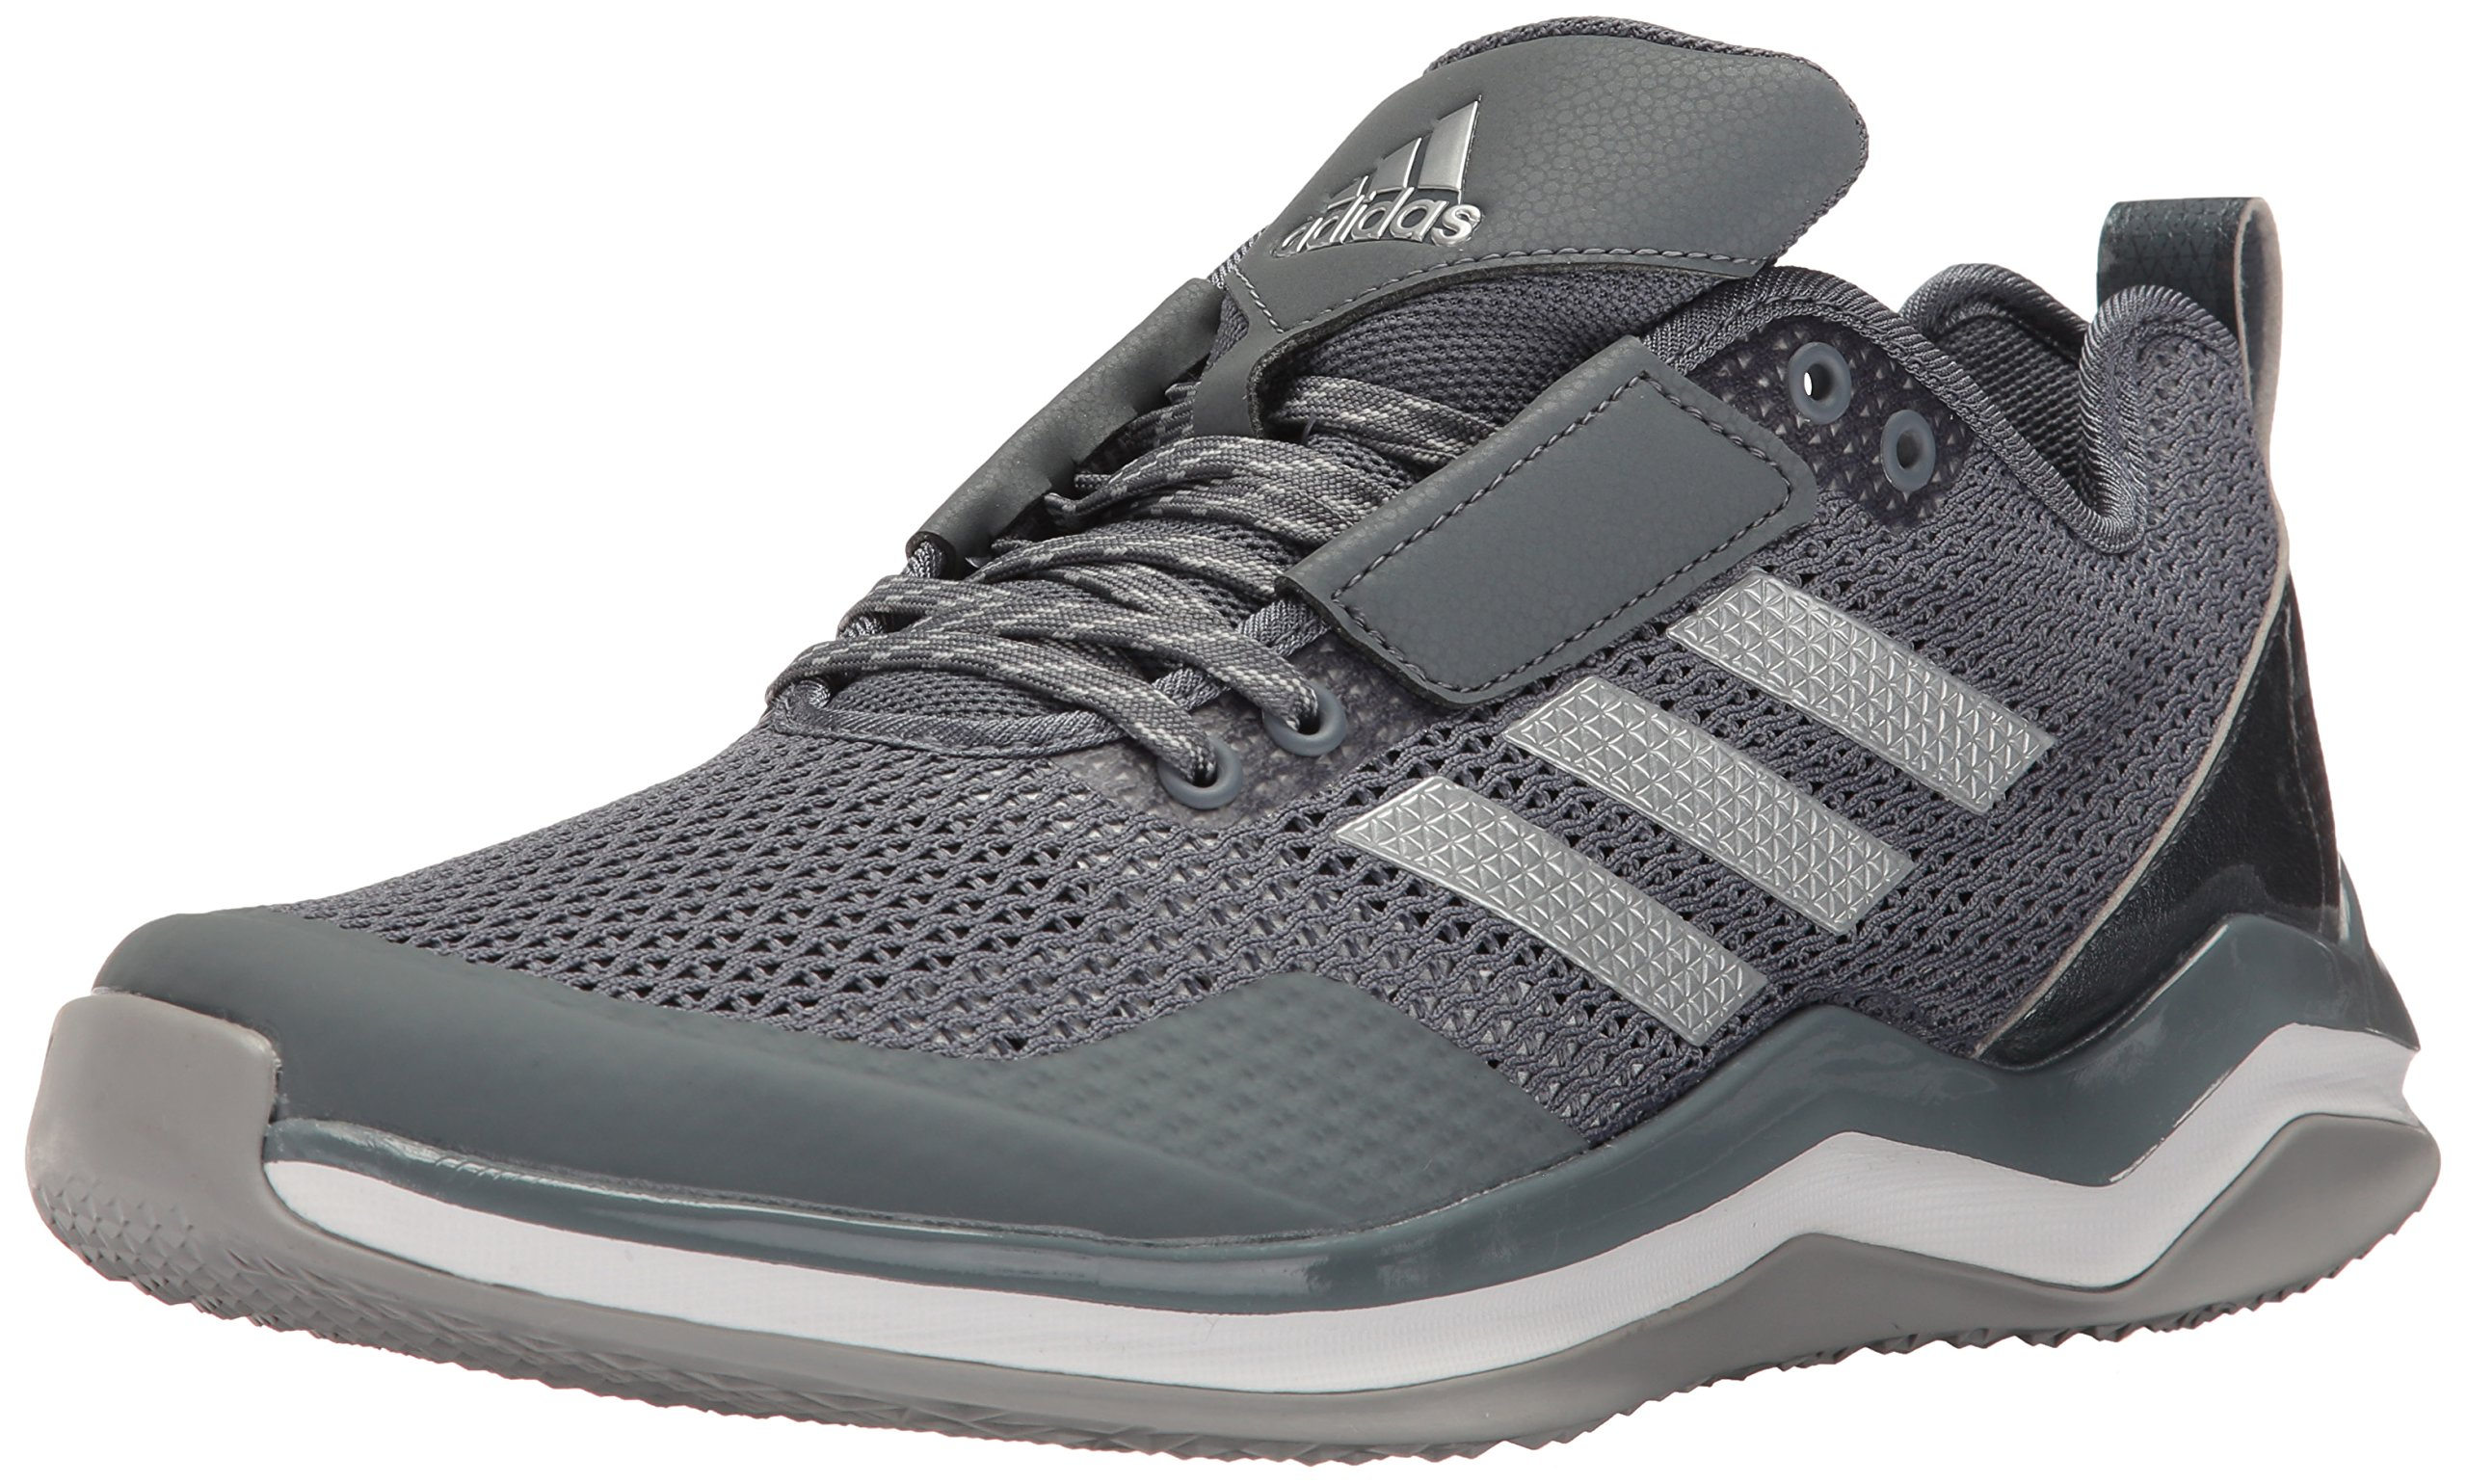 adidas Men's Freak X Carbon Mid Cross Trainer, Onix/Metallic Silver/White, (12 M US) by adidas